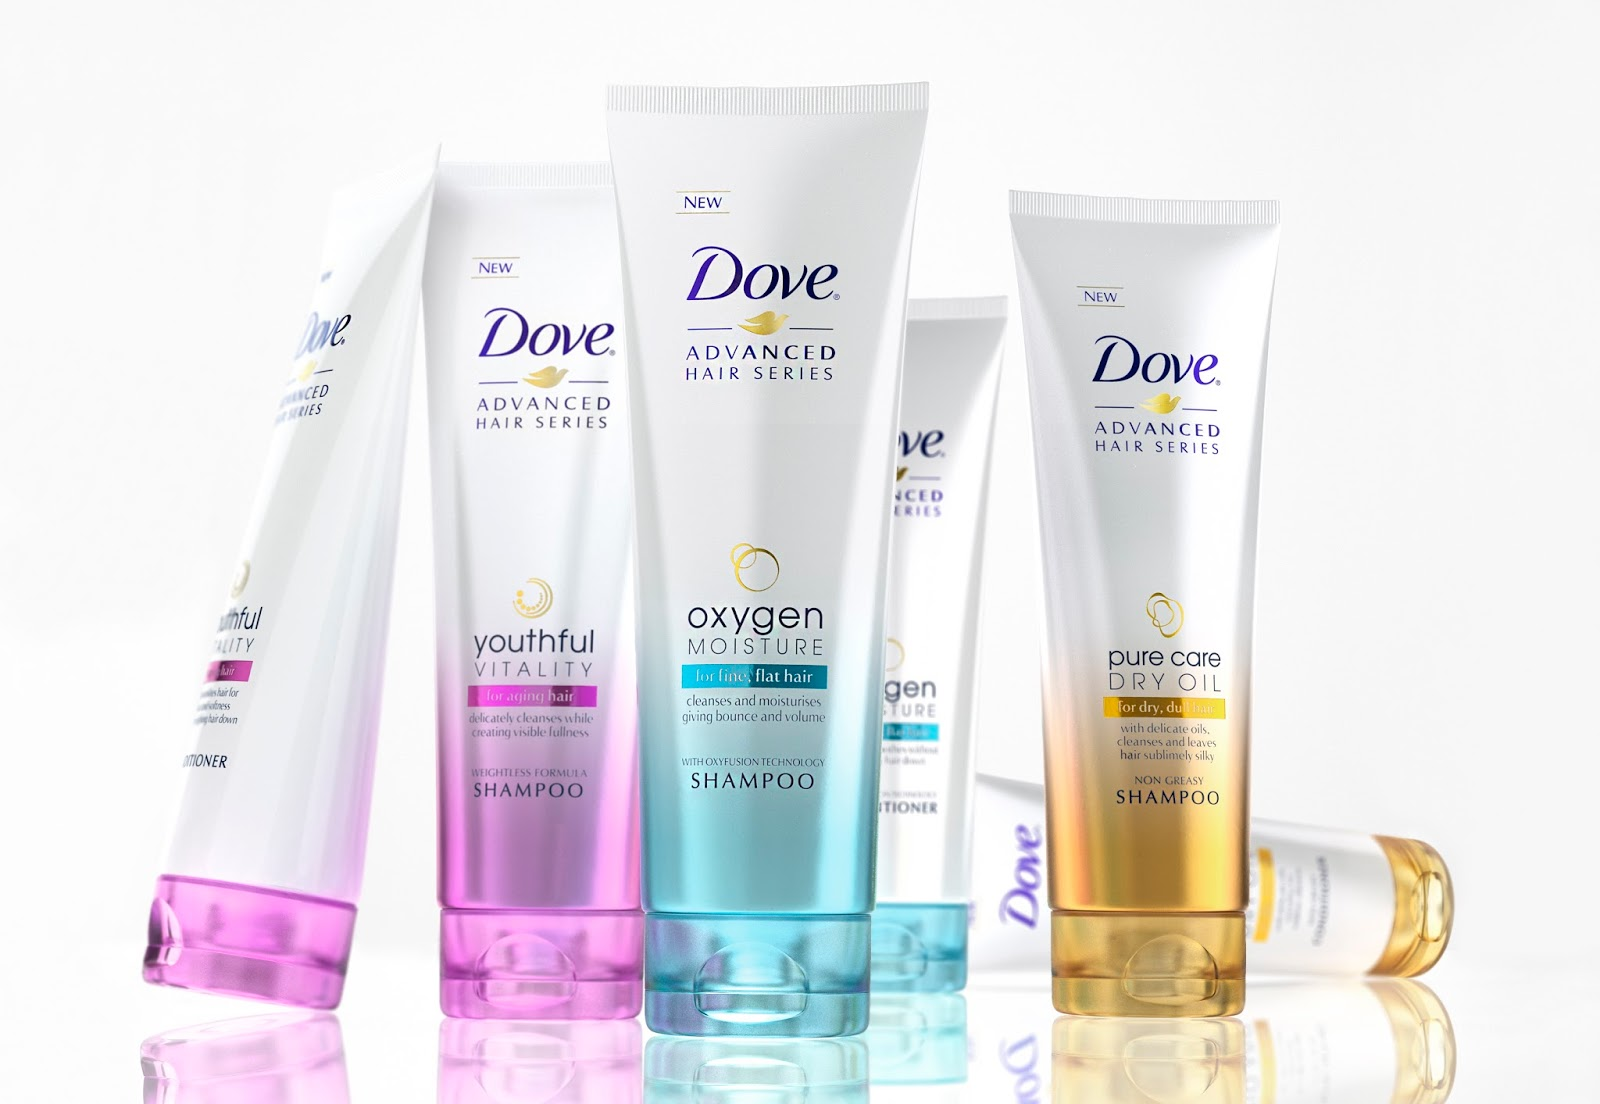 New Dove Advanced Hair Series On Packaging Of The World